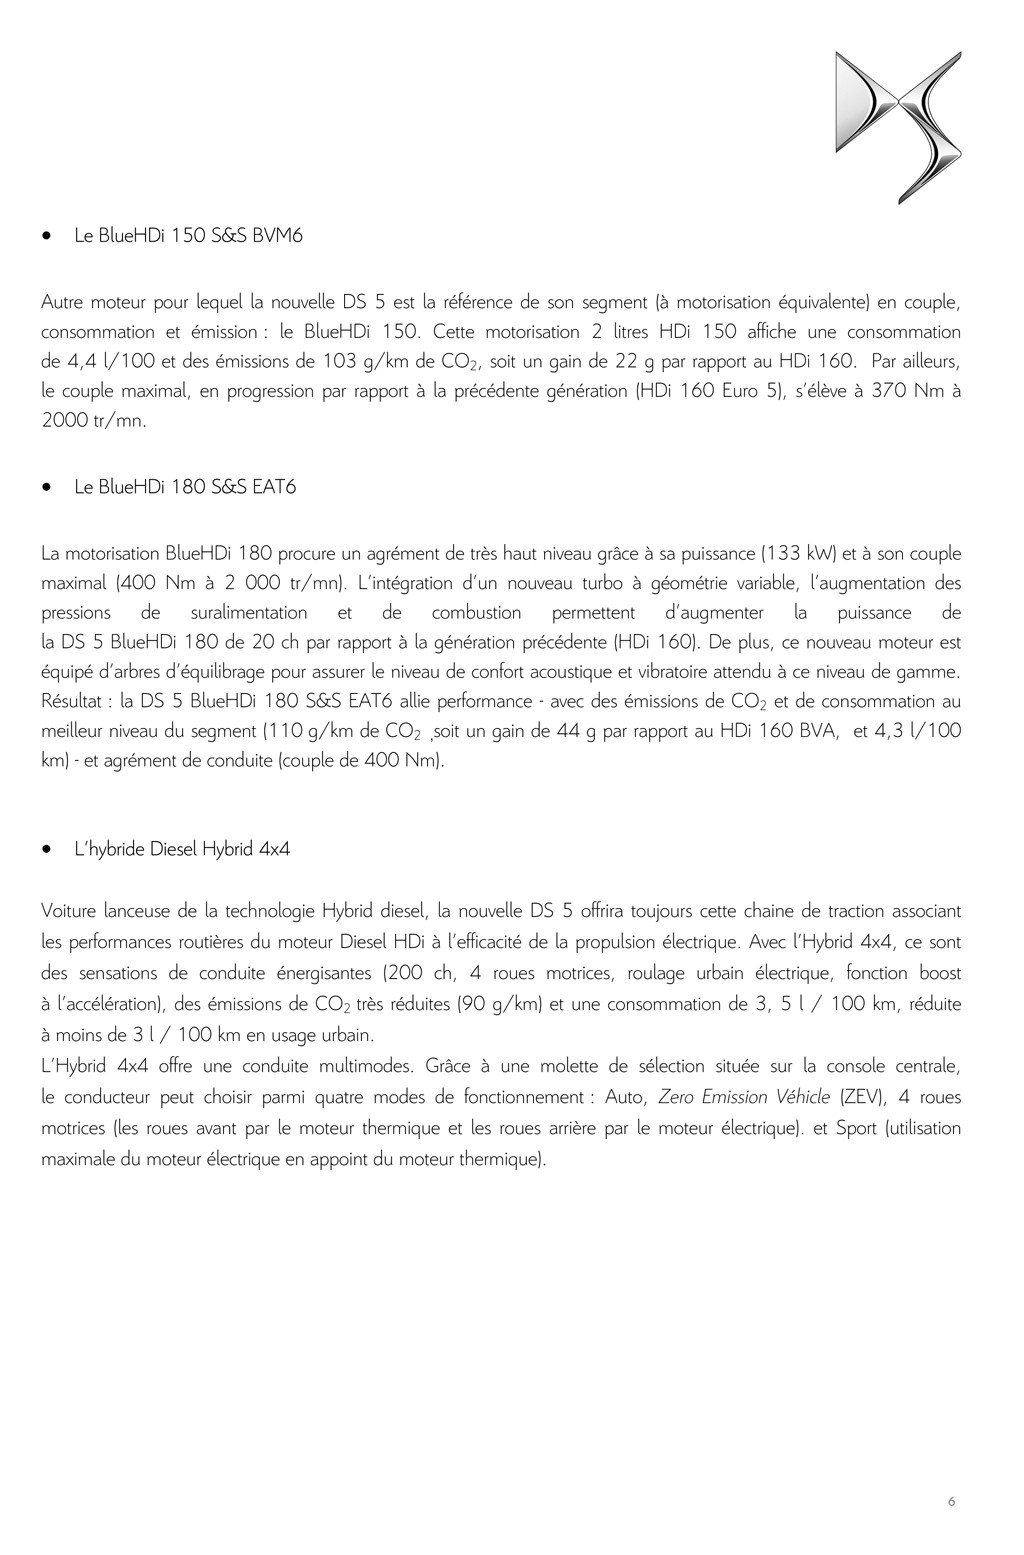 [SUJET OFFICIEL] DS 5 restylée (photos officielles p.16) - Page 10 Dp_ds_15